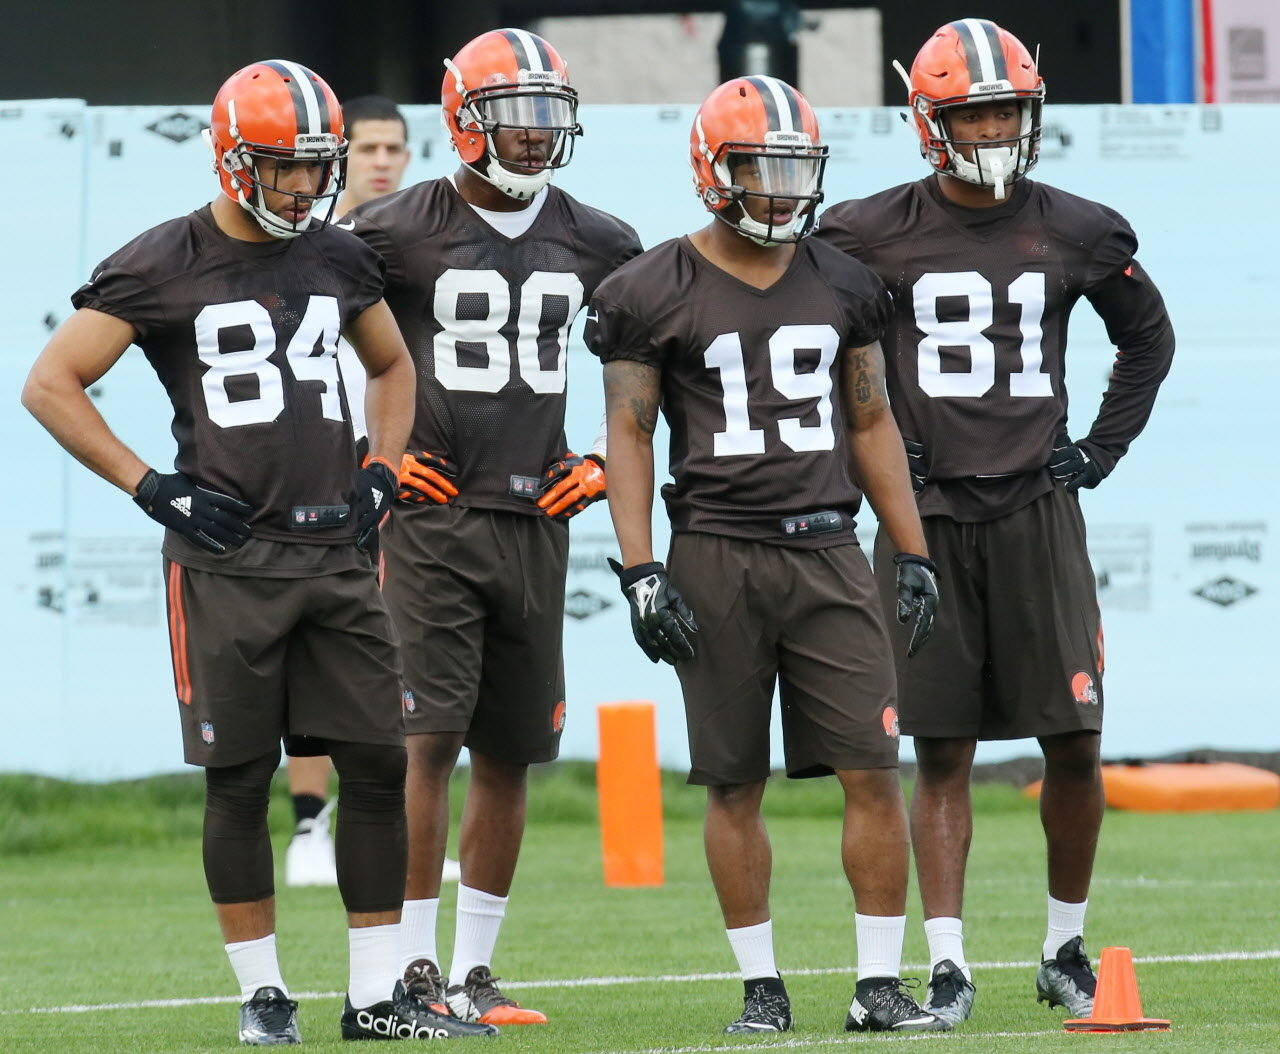 browns rookie jersey numbers